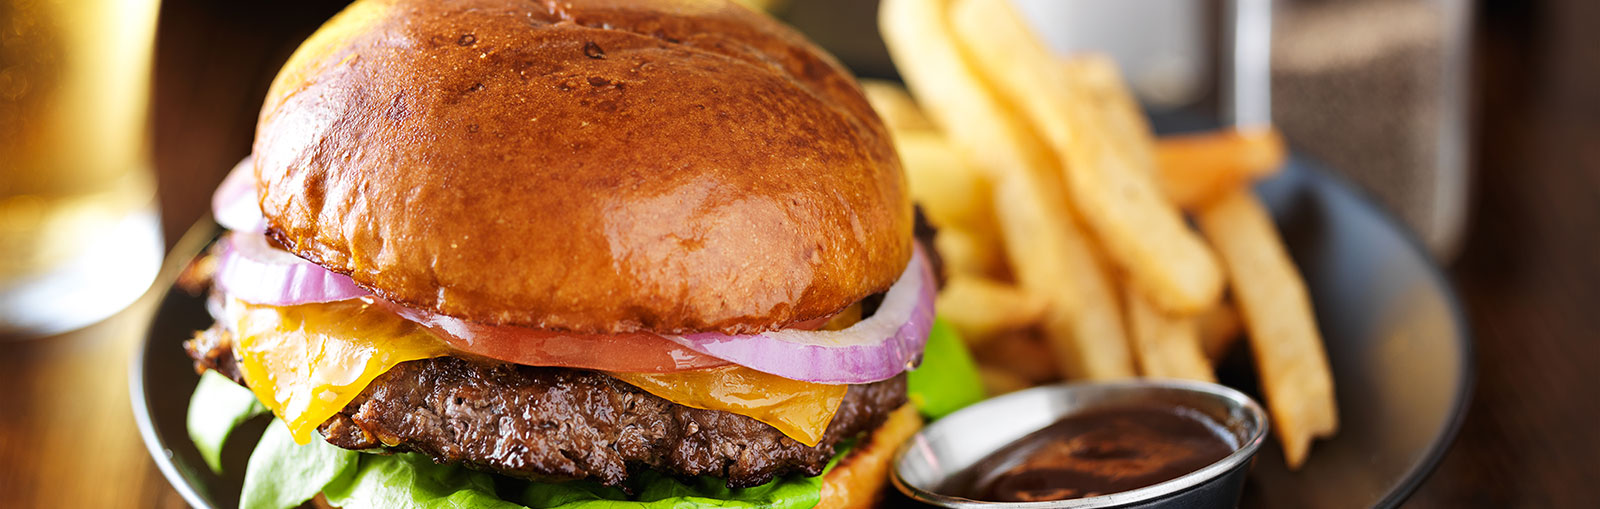 cheese burger and fries